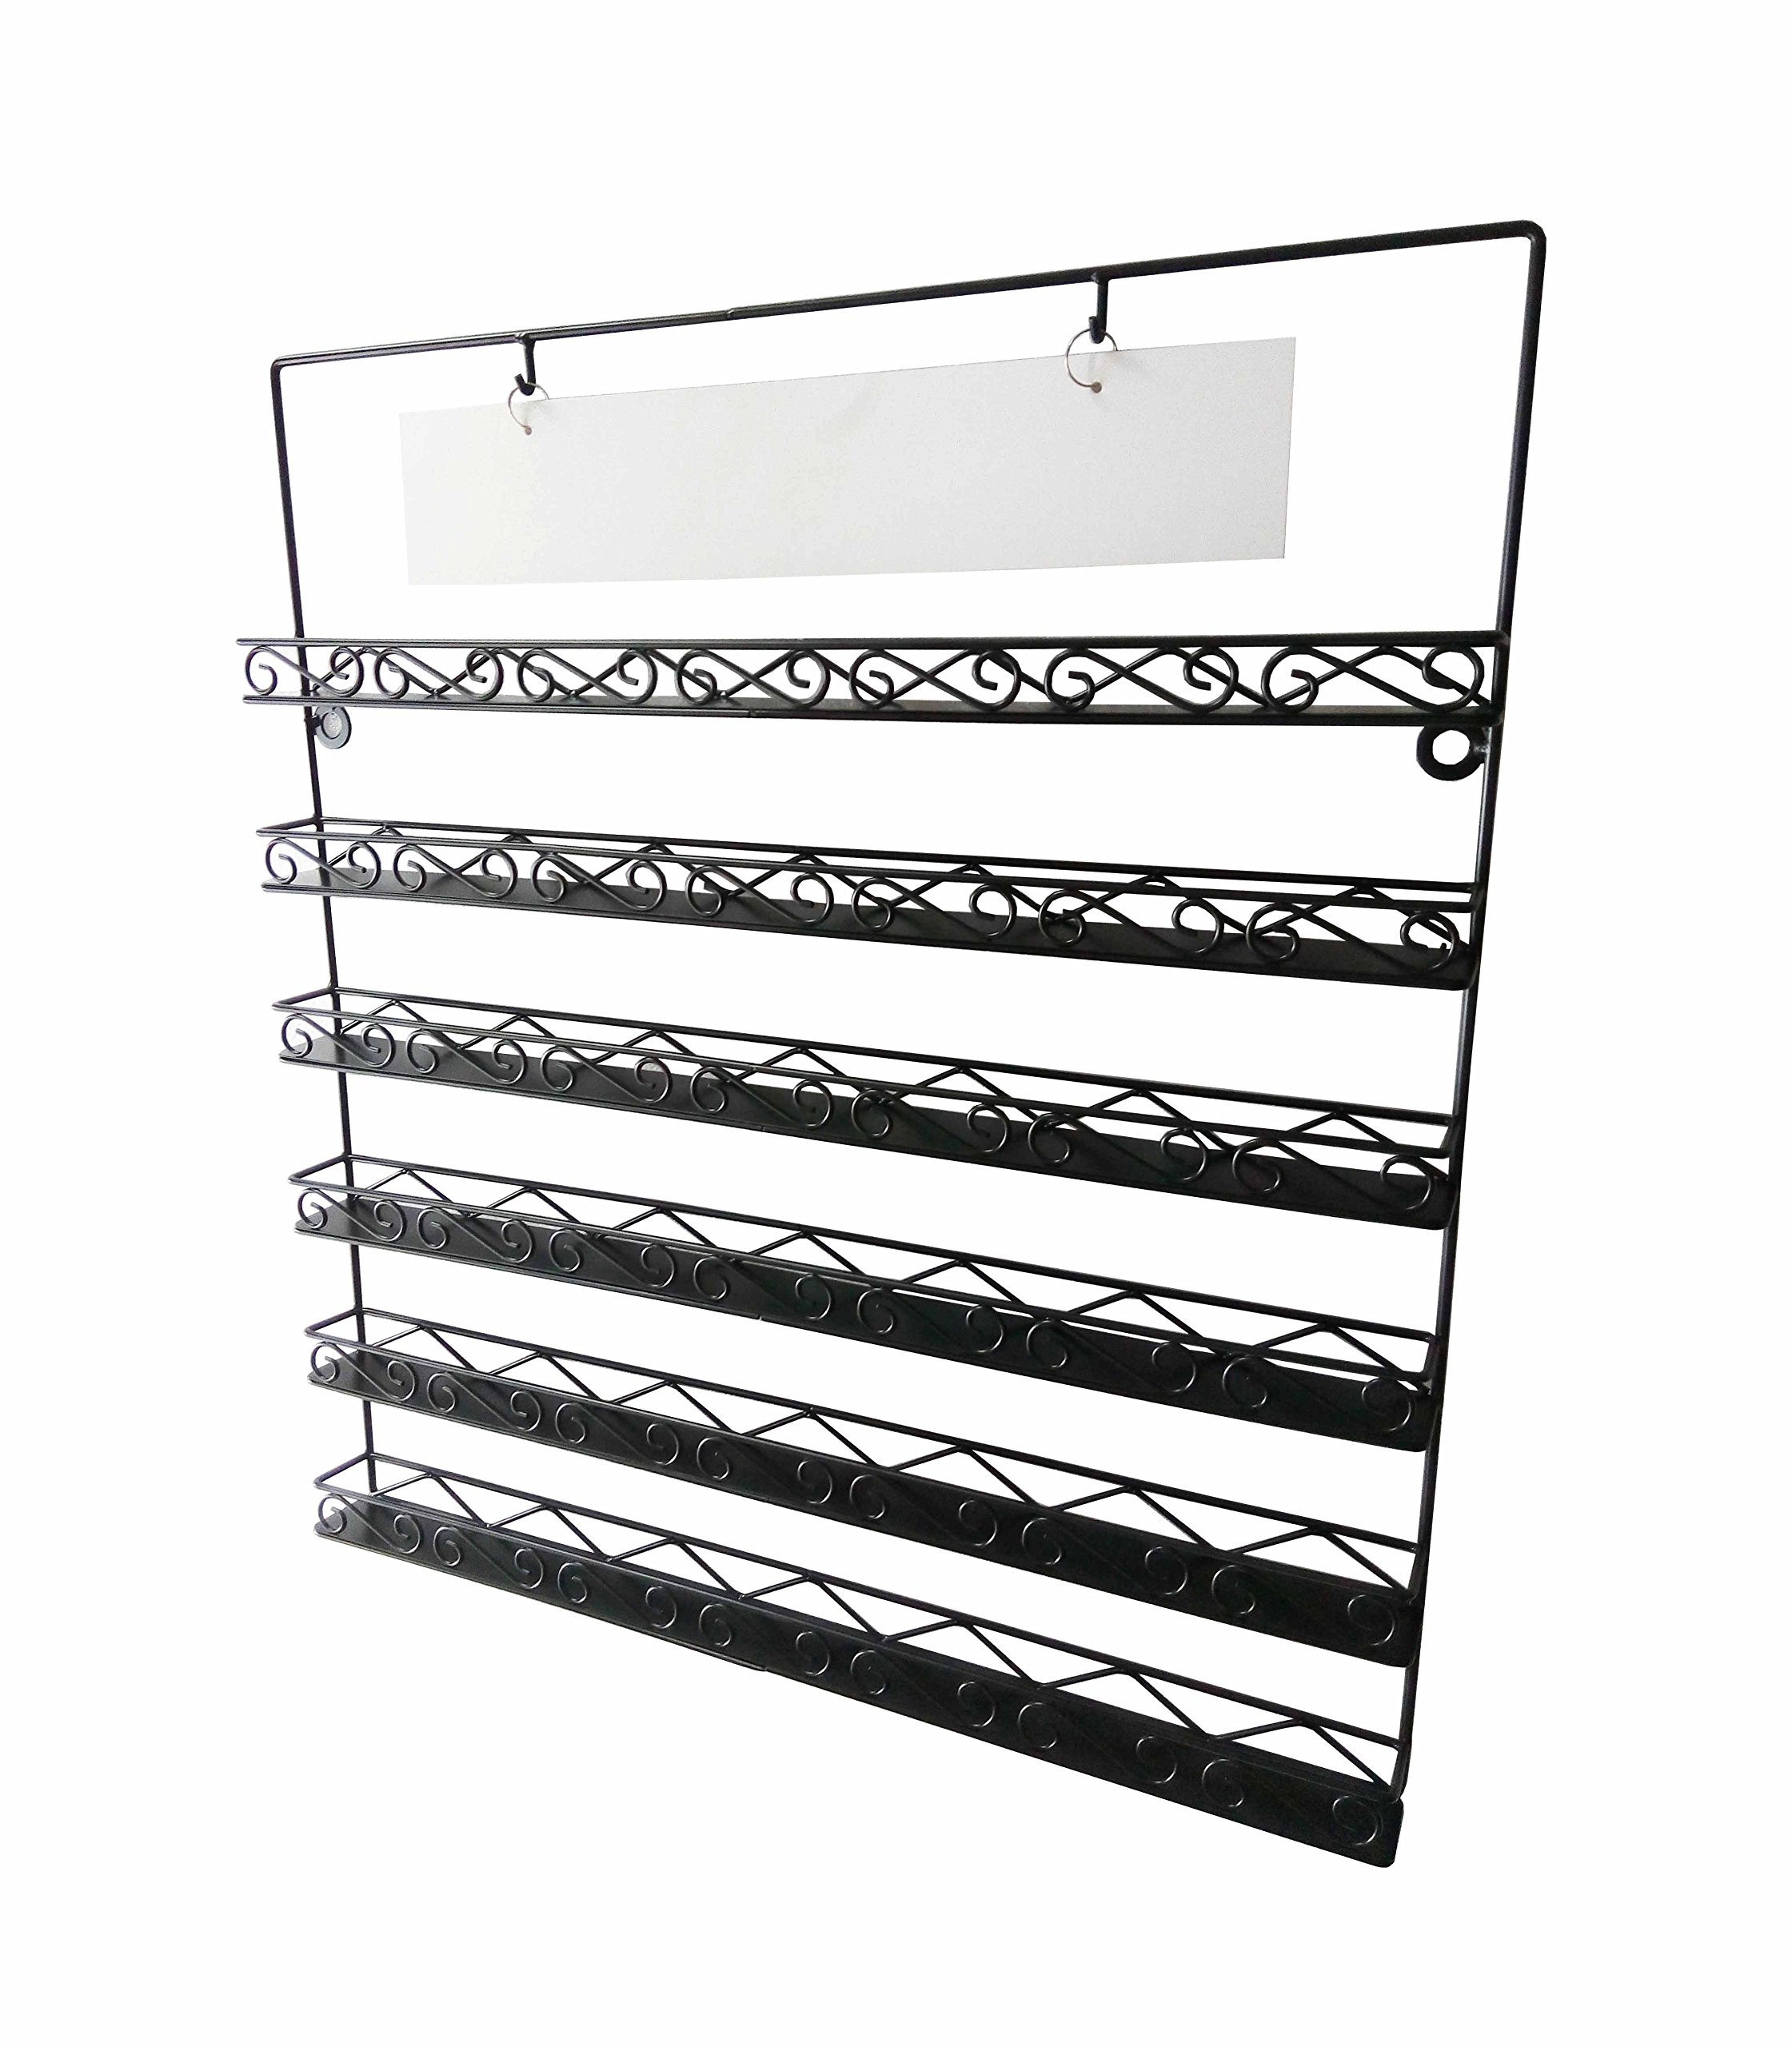 FixtureDisplays 6-Tier Wire Display Rack for Wall Mount Use, Holds Nail Polish, Sign Included-Black119353 119353